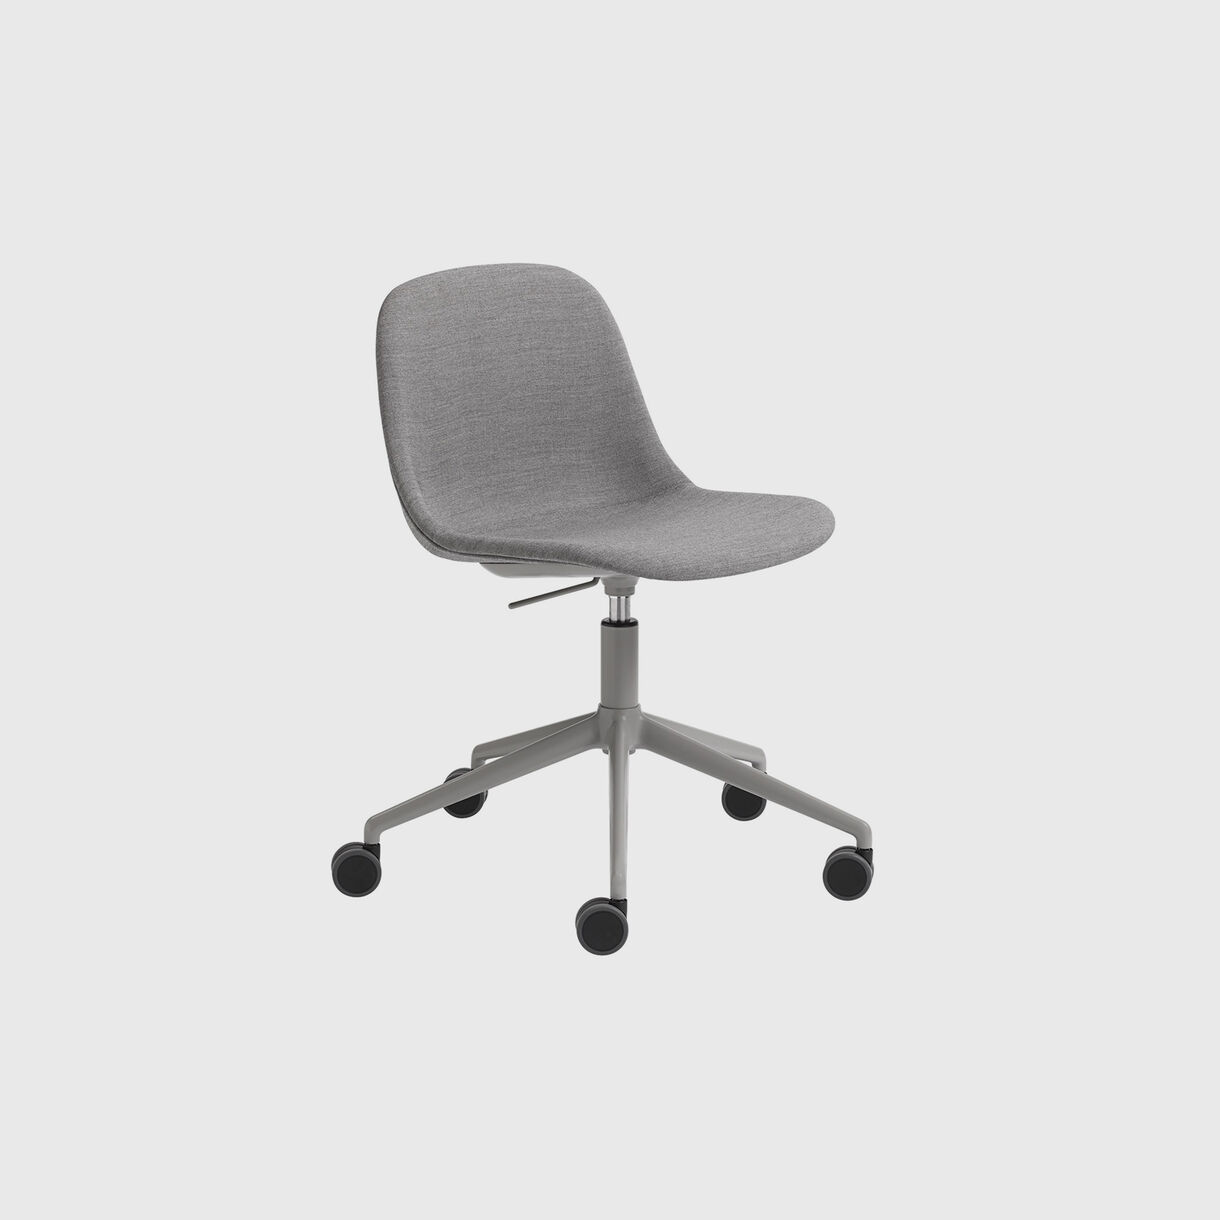 Fiber Side Chair Upholstered, Remix 133, Swivel Base with Castors & Gas Lift, Grey